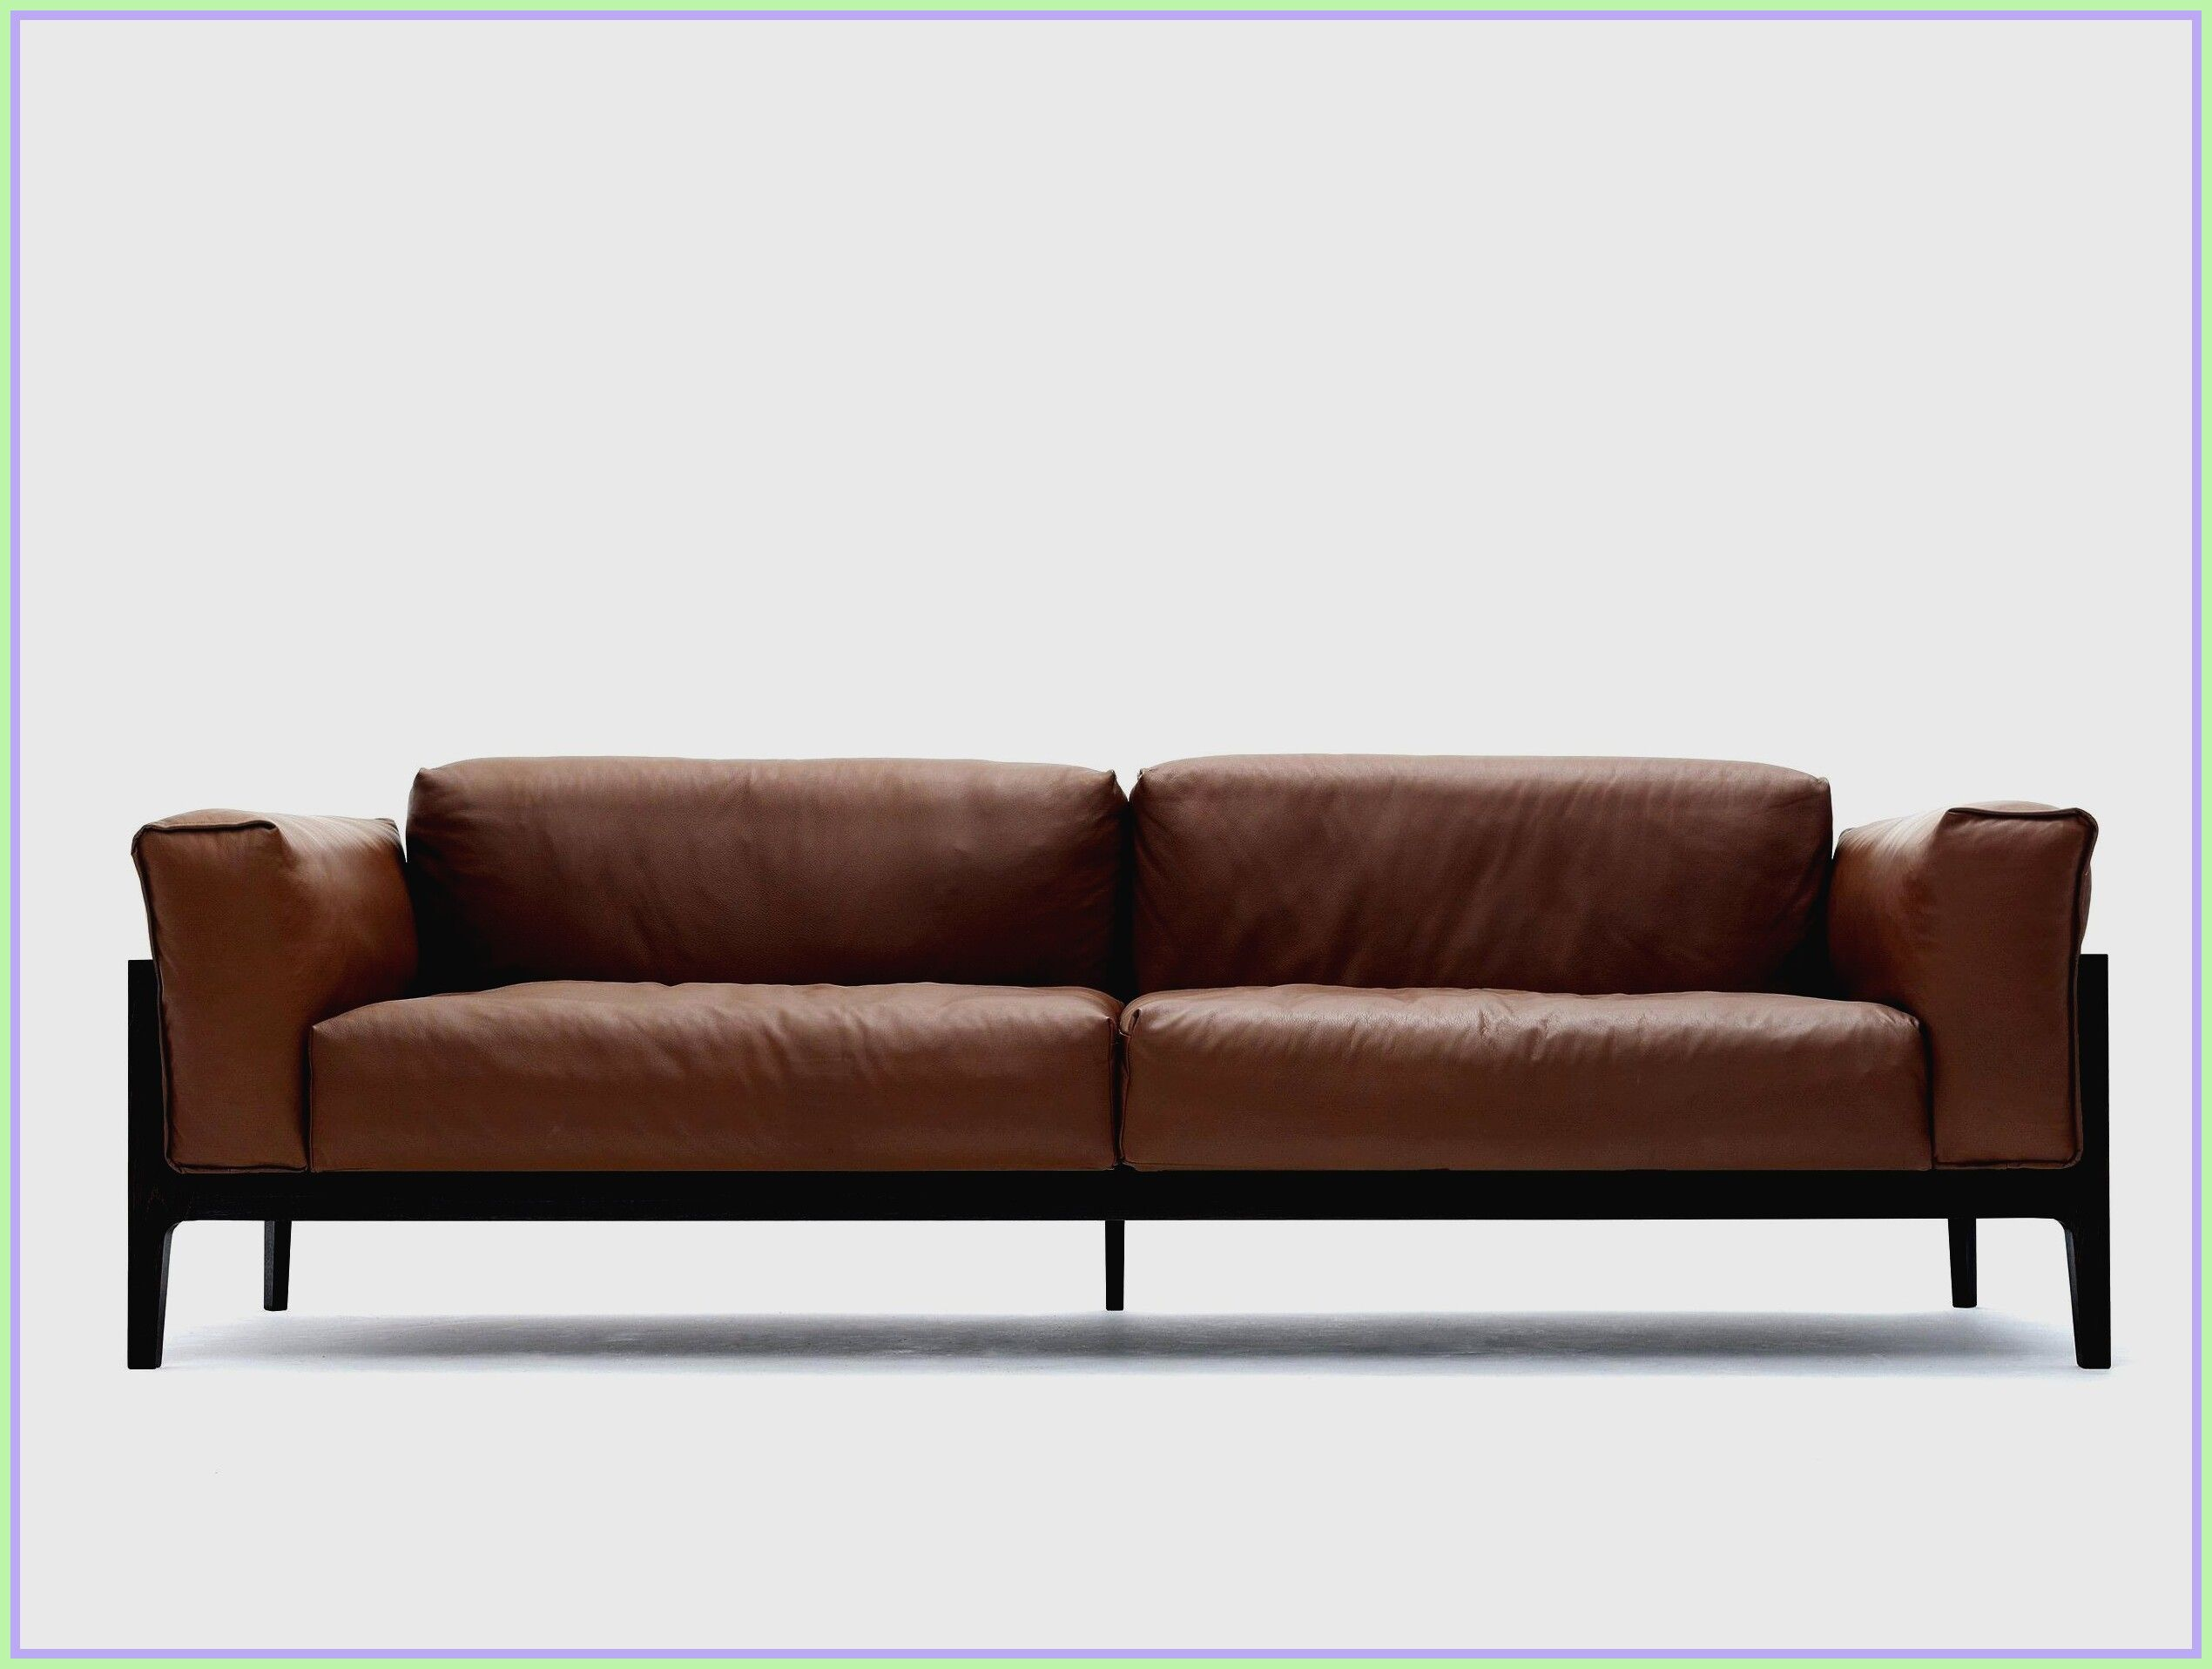 45 Reference Of Sofa Leder Braun Gebraucht In 2020 Sofa Design Sofa Furniture Leather Sofa